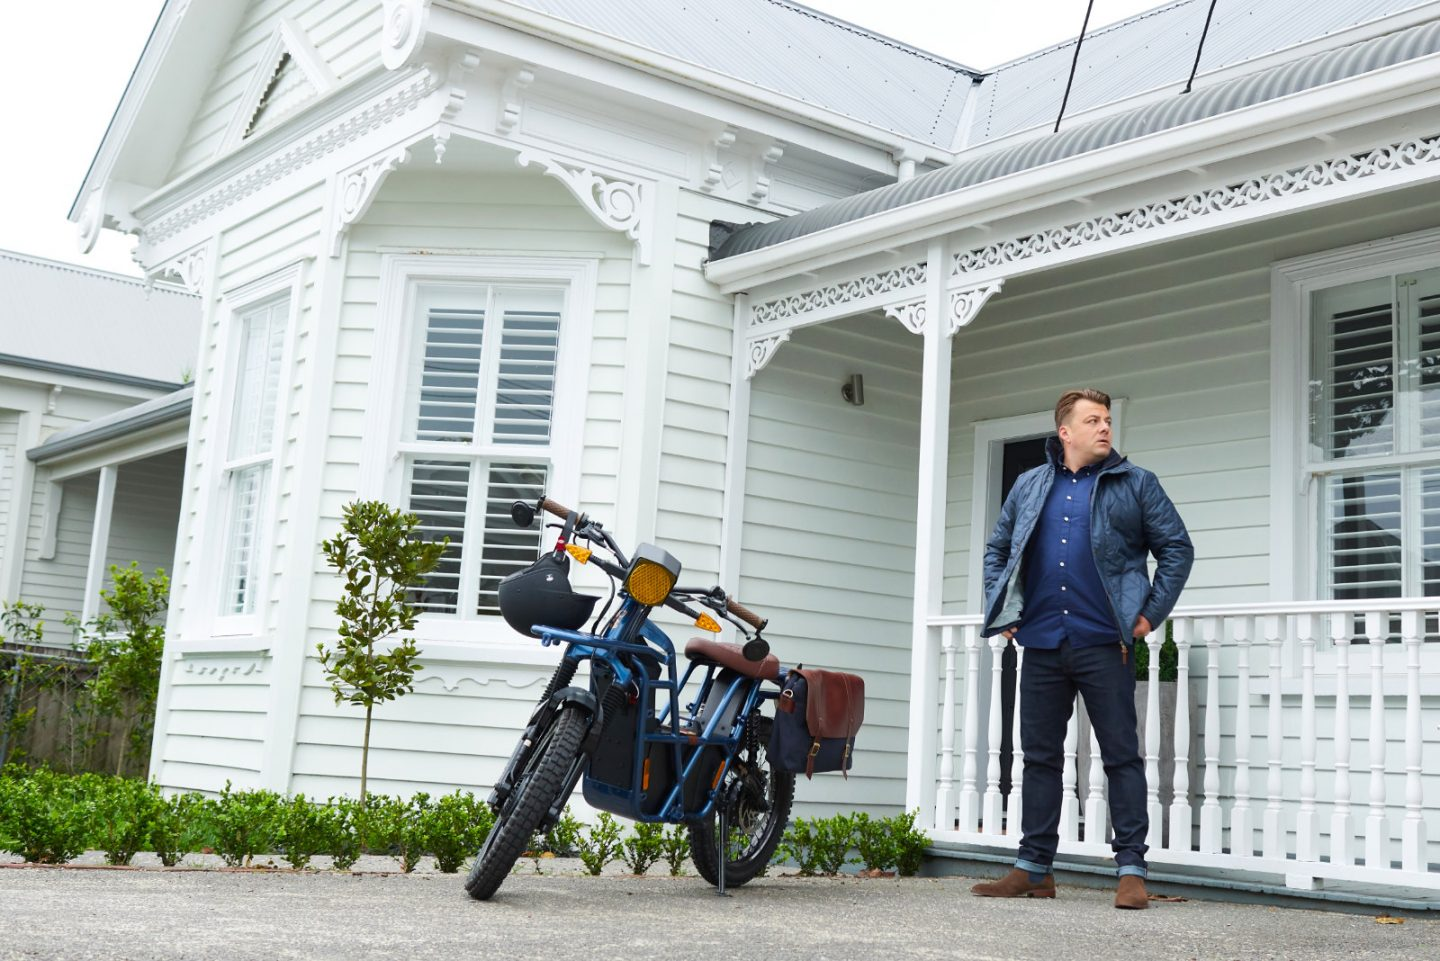 3 Wise Men collaborates with Ubco on motorcycle and capsule collection